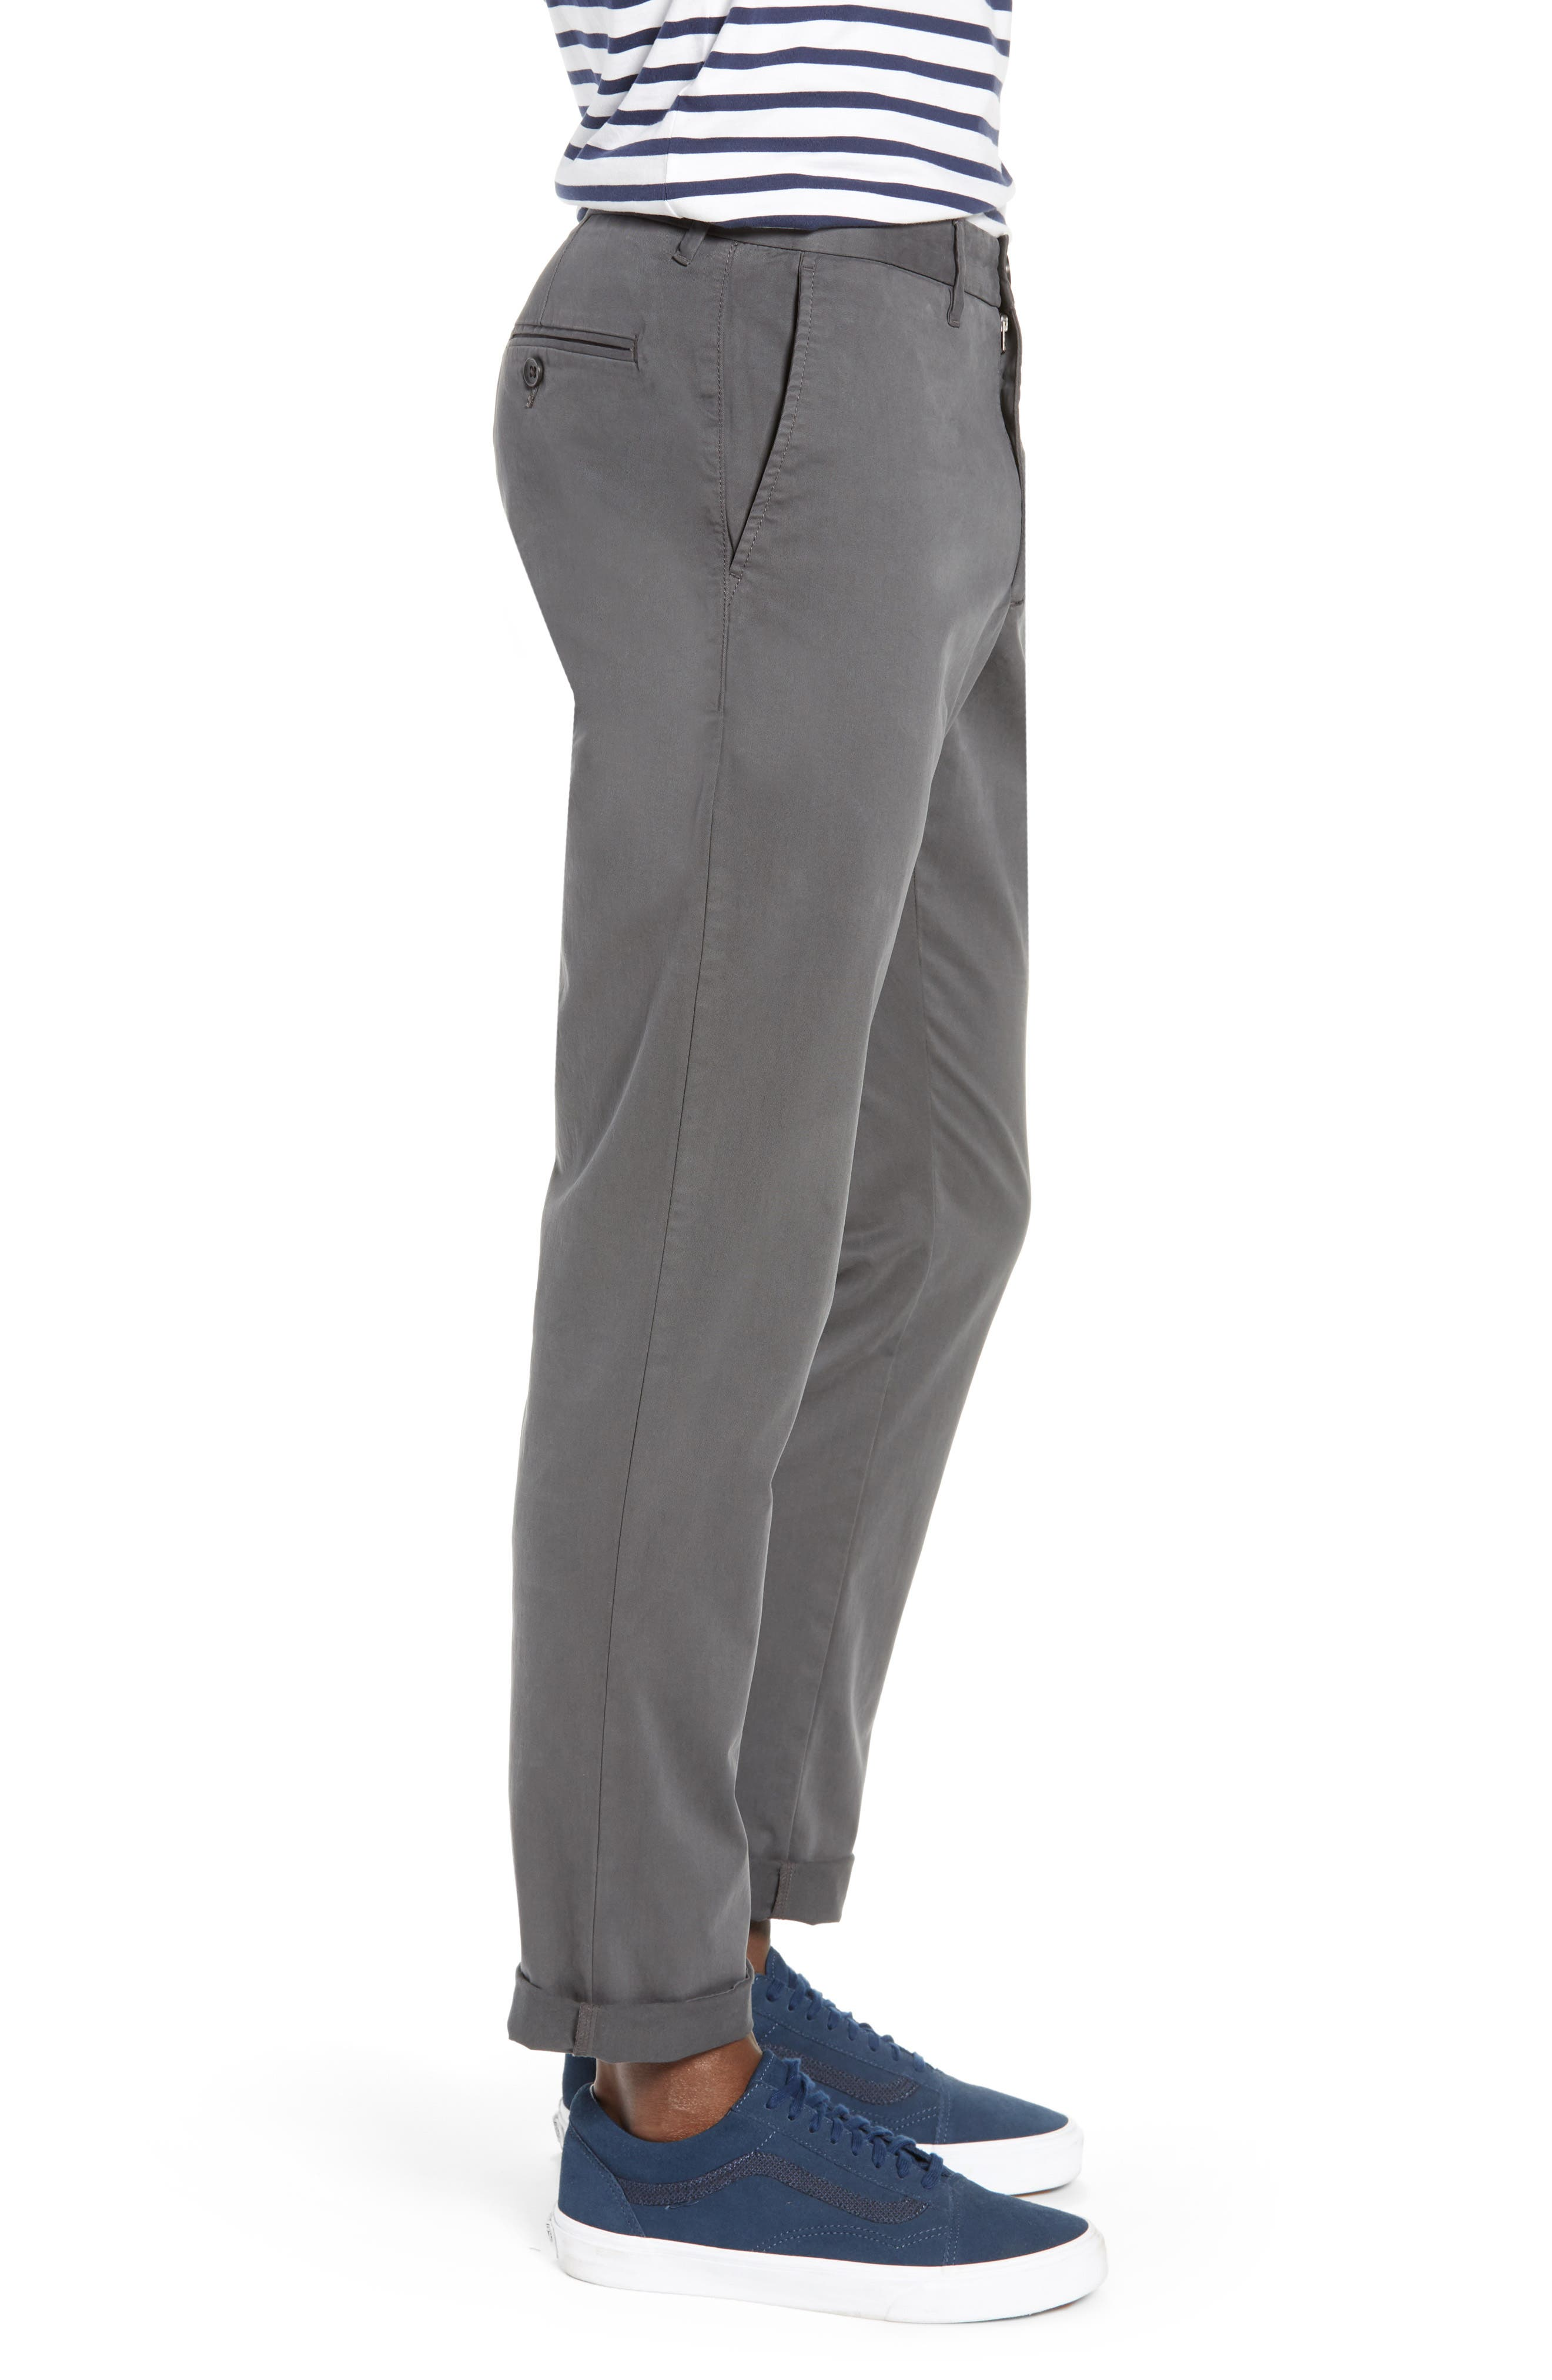 Fremont Flat Front Slim Fit Stretch Chino Pants,                             Alternate thumbnail 3, color,                             GREY ONYX